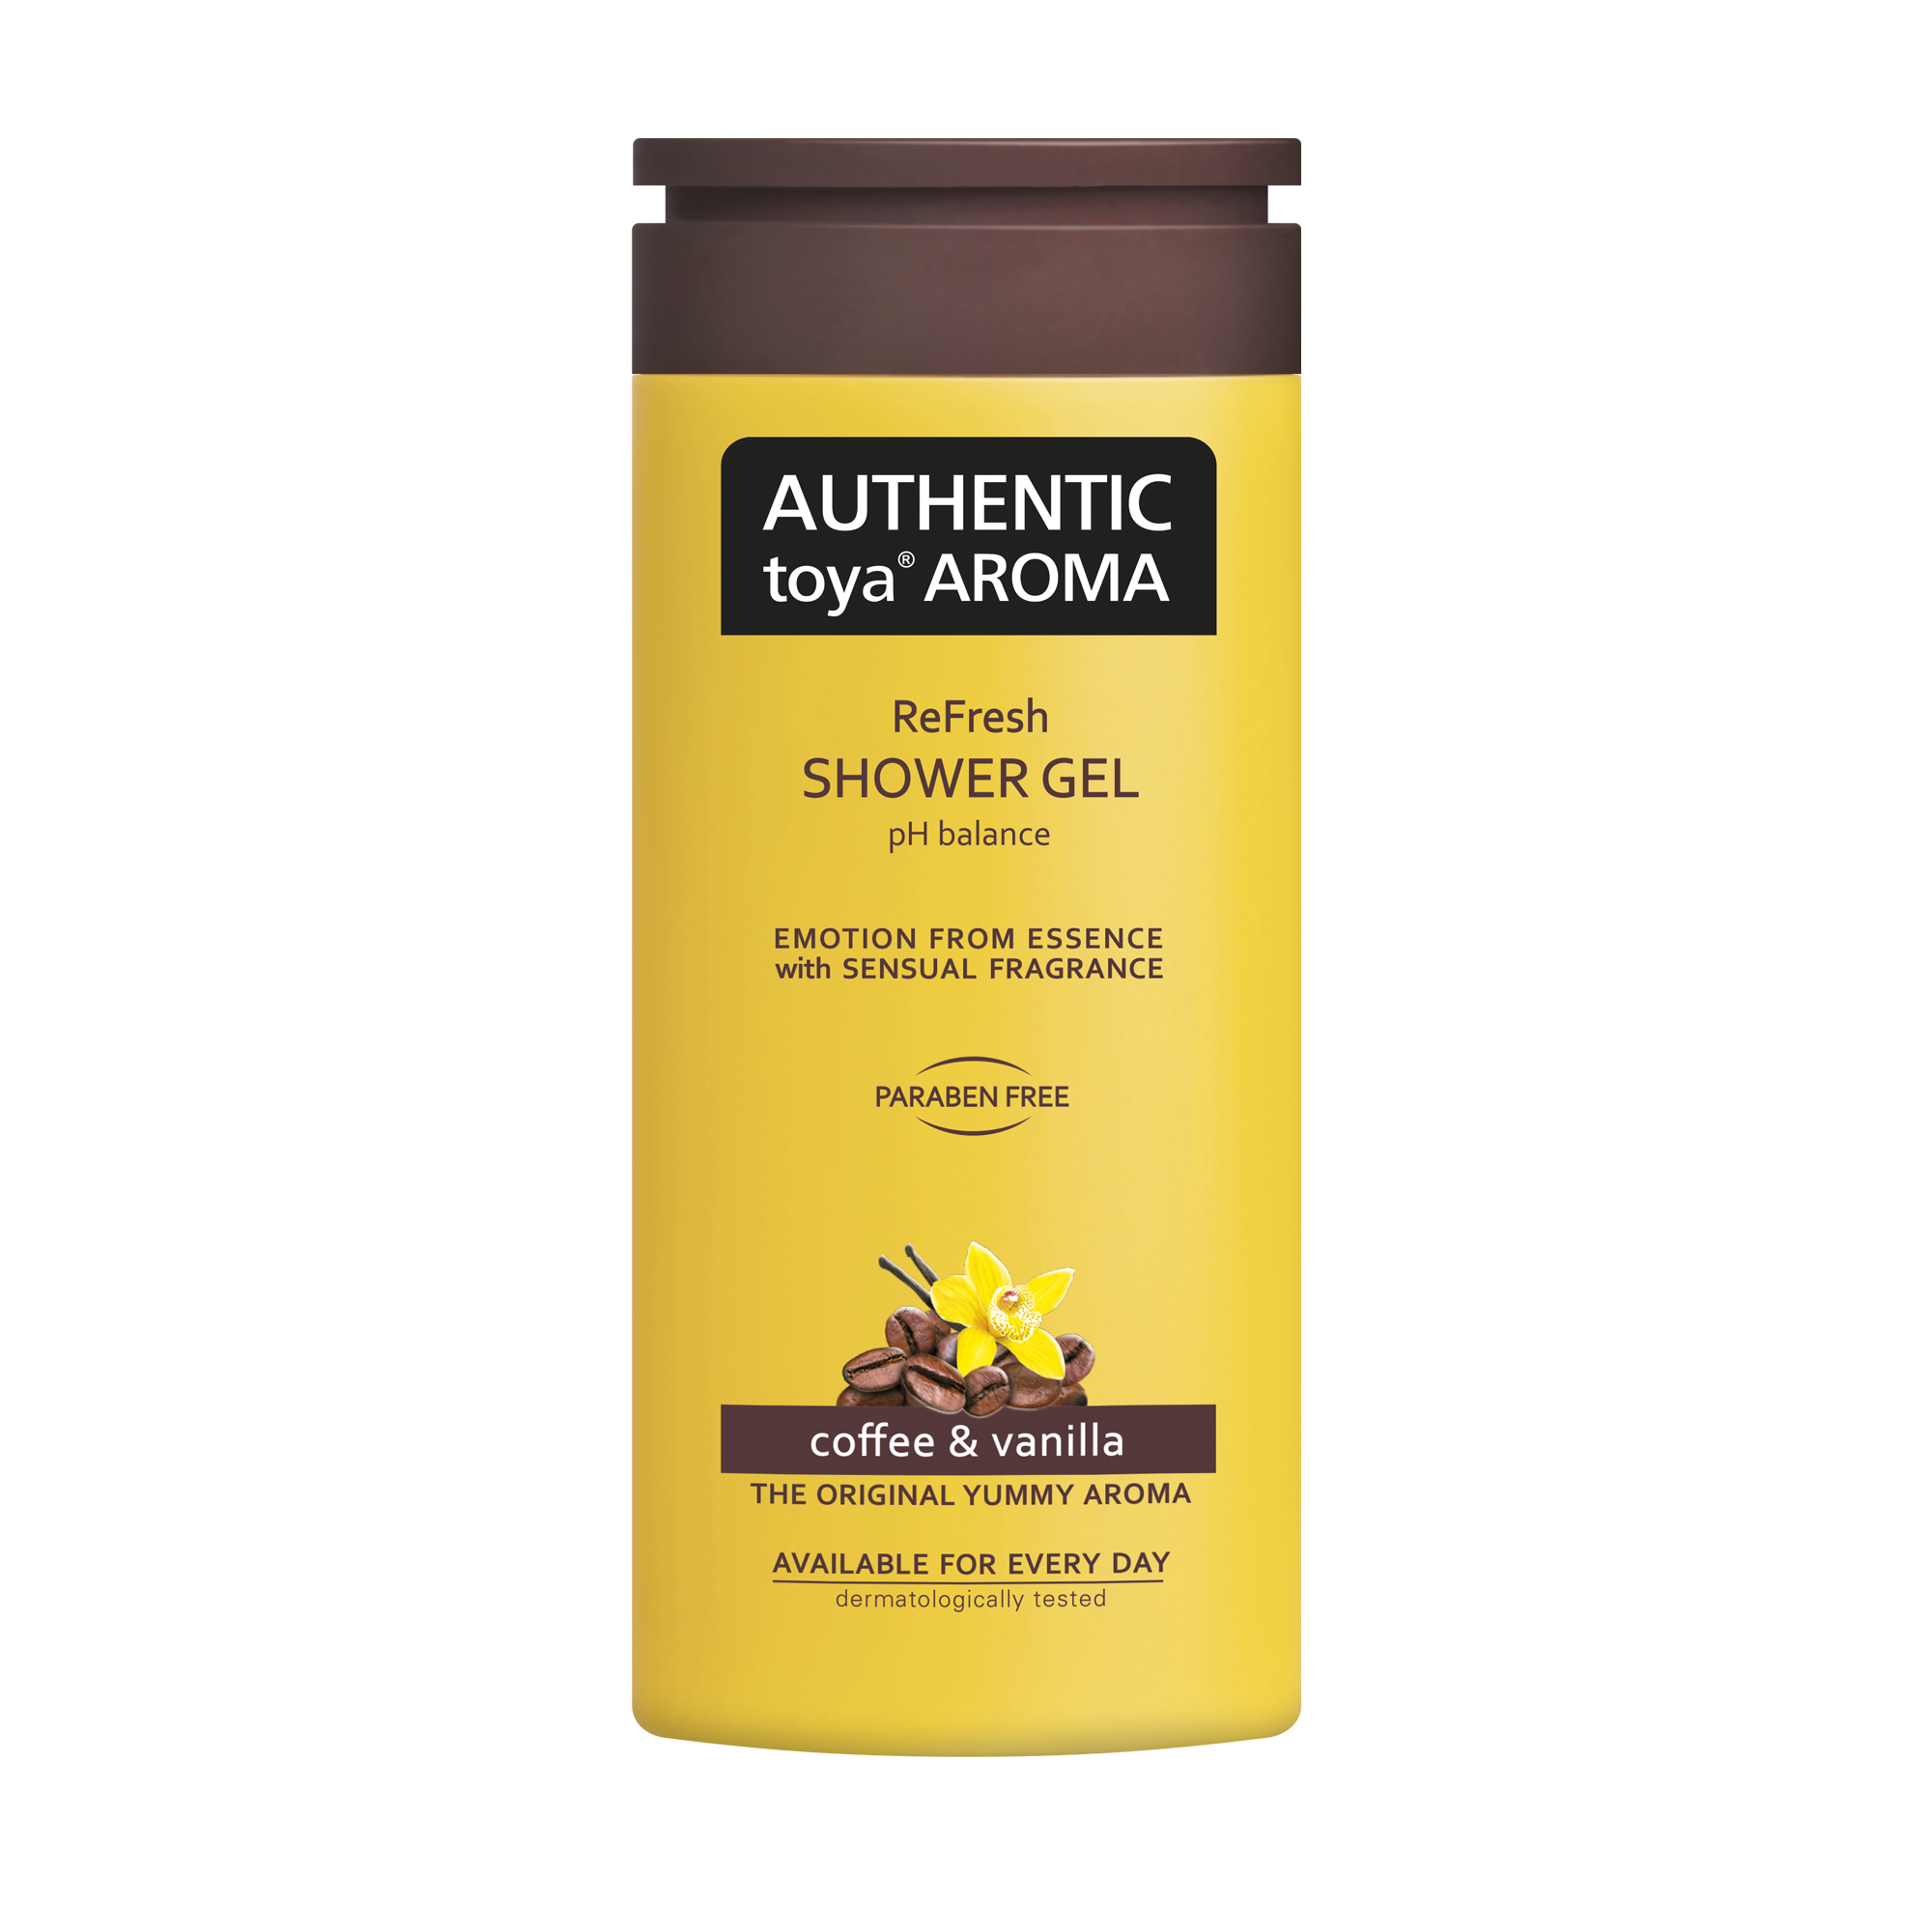 AUTHENTIC toya AROMA coffee & vanilla shower gel